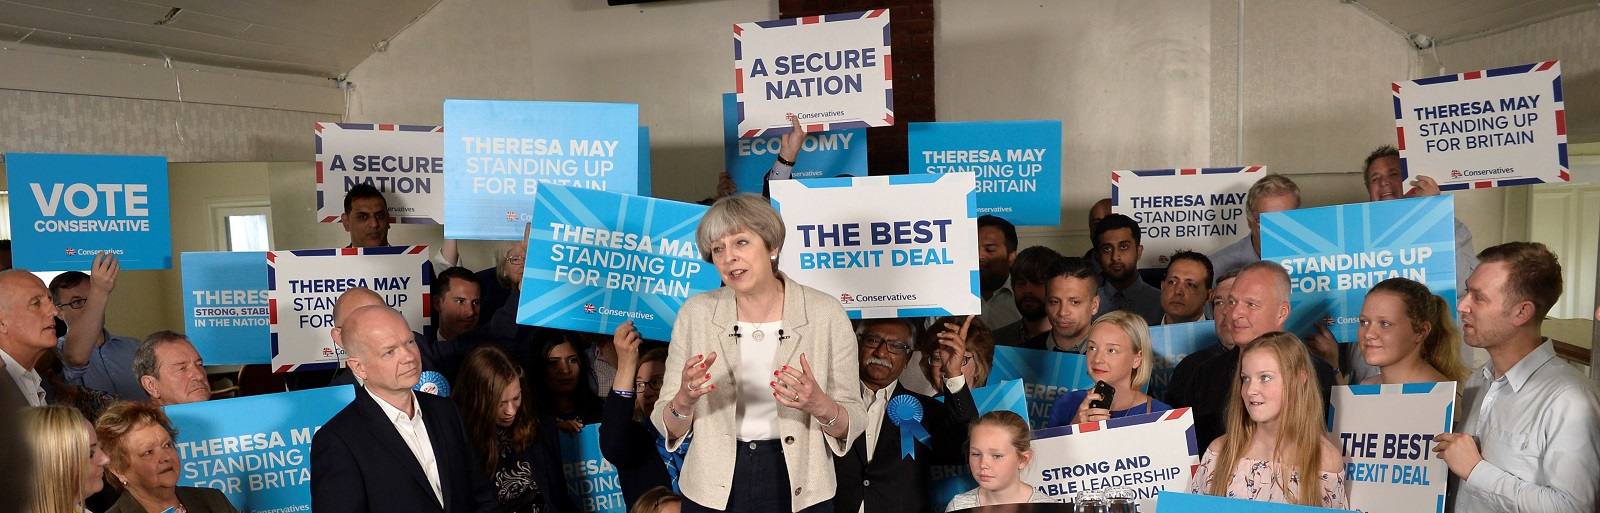 Britain's Prime Minister Theresa May at a campaign event last week. (Photo by Hannah McKay/Getty Images)